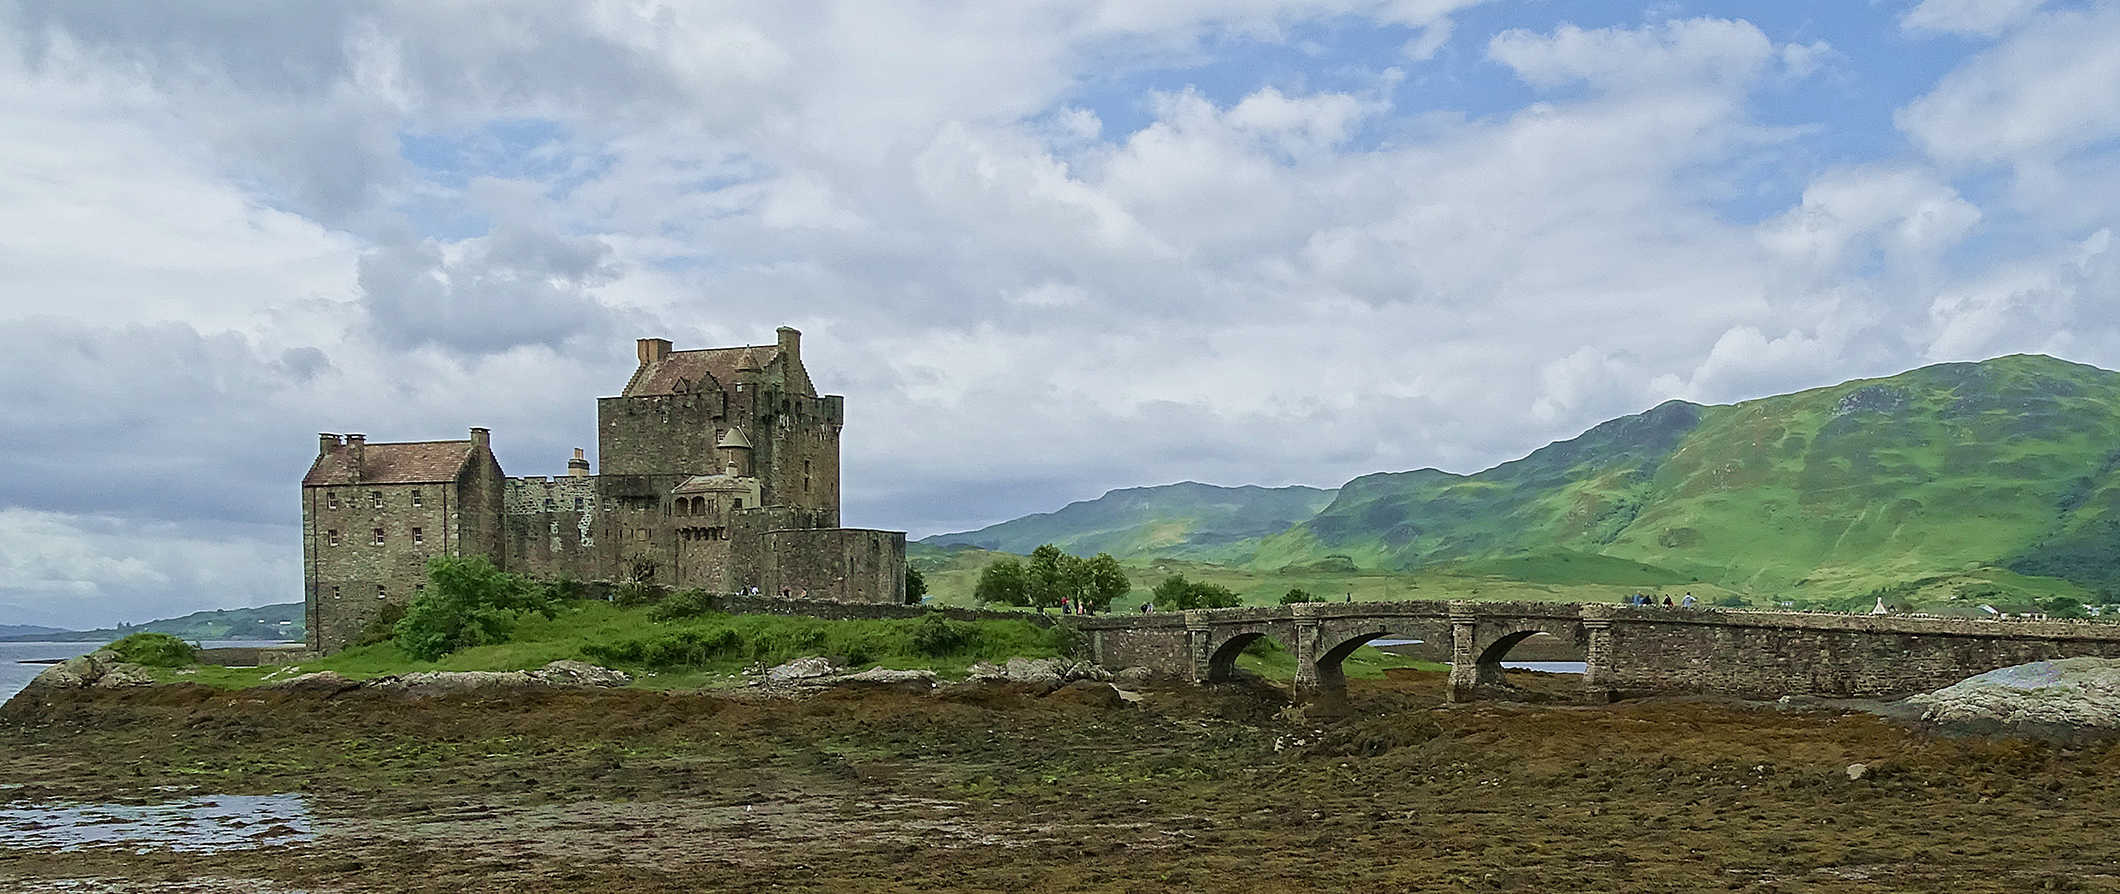 a castle in the Highlands, Scotland